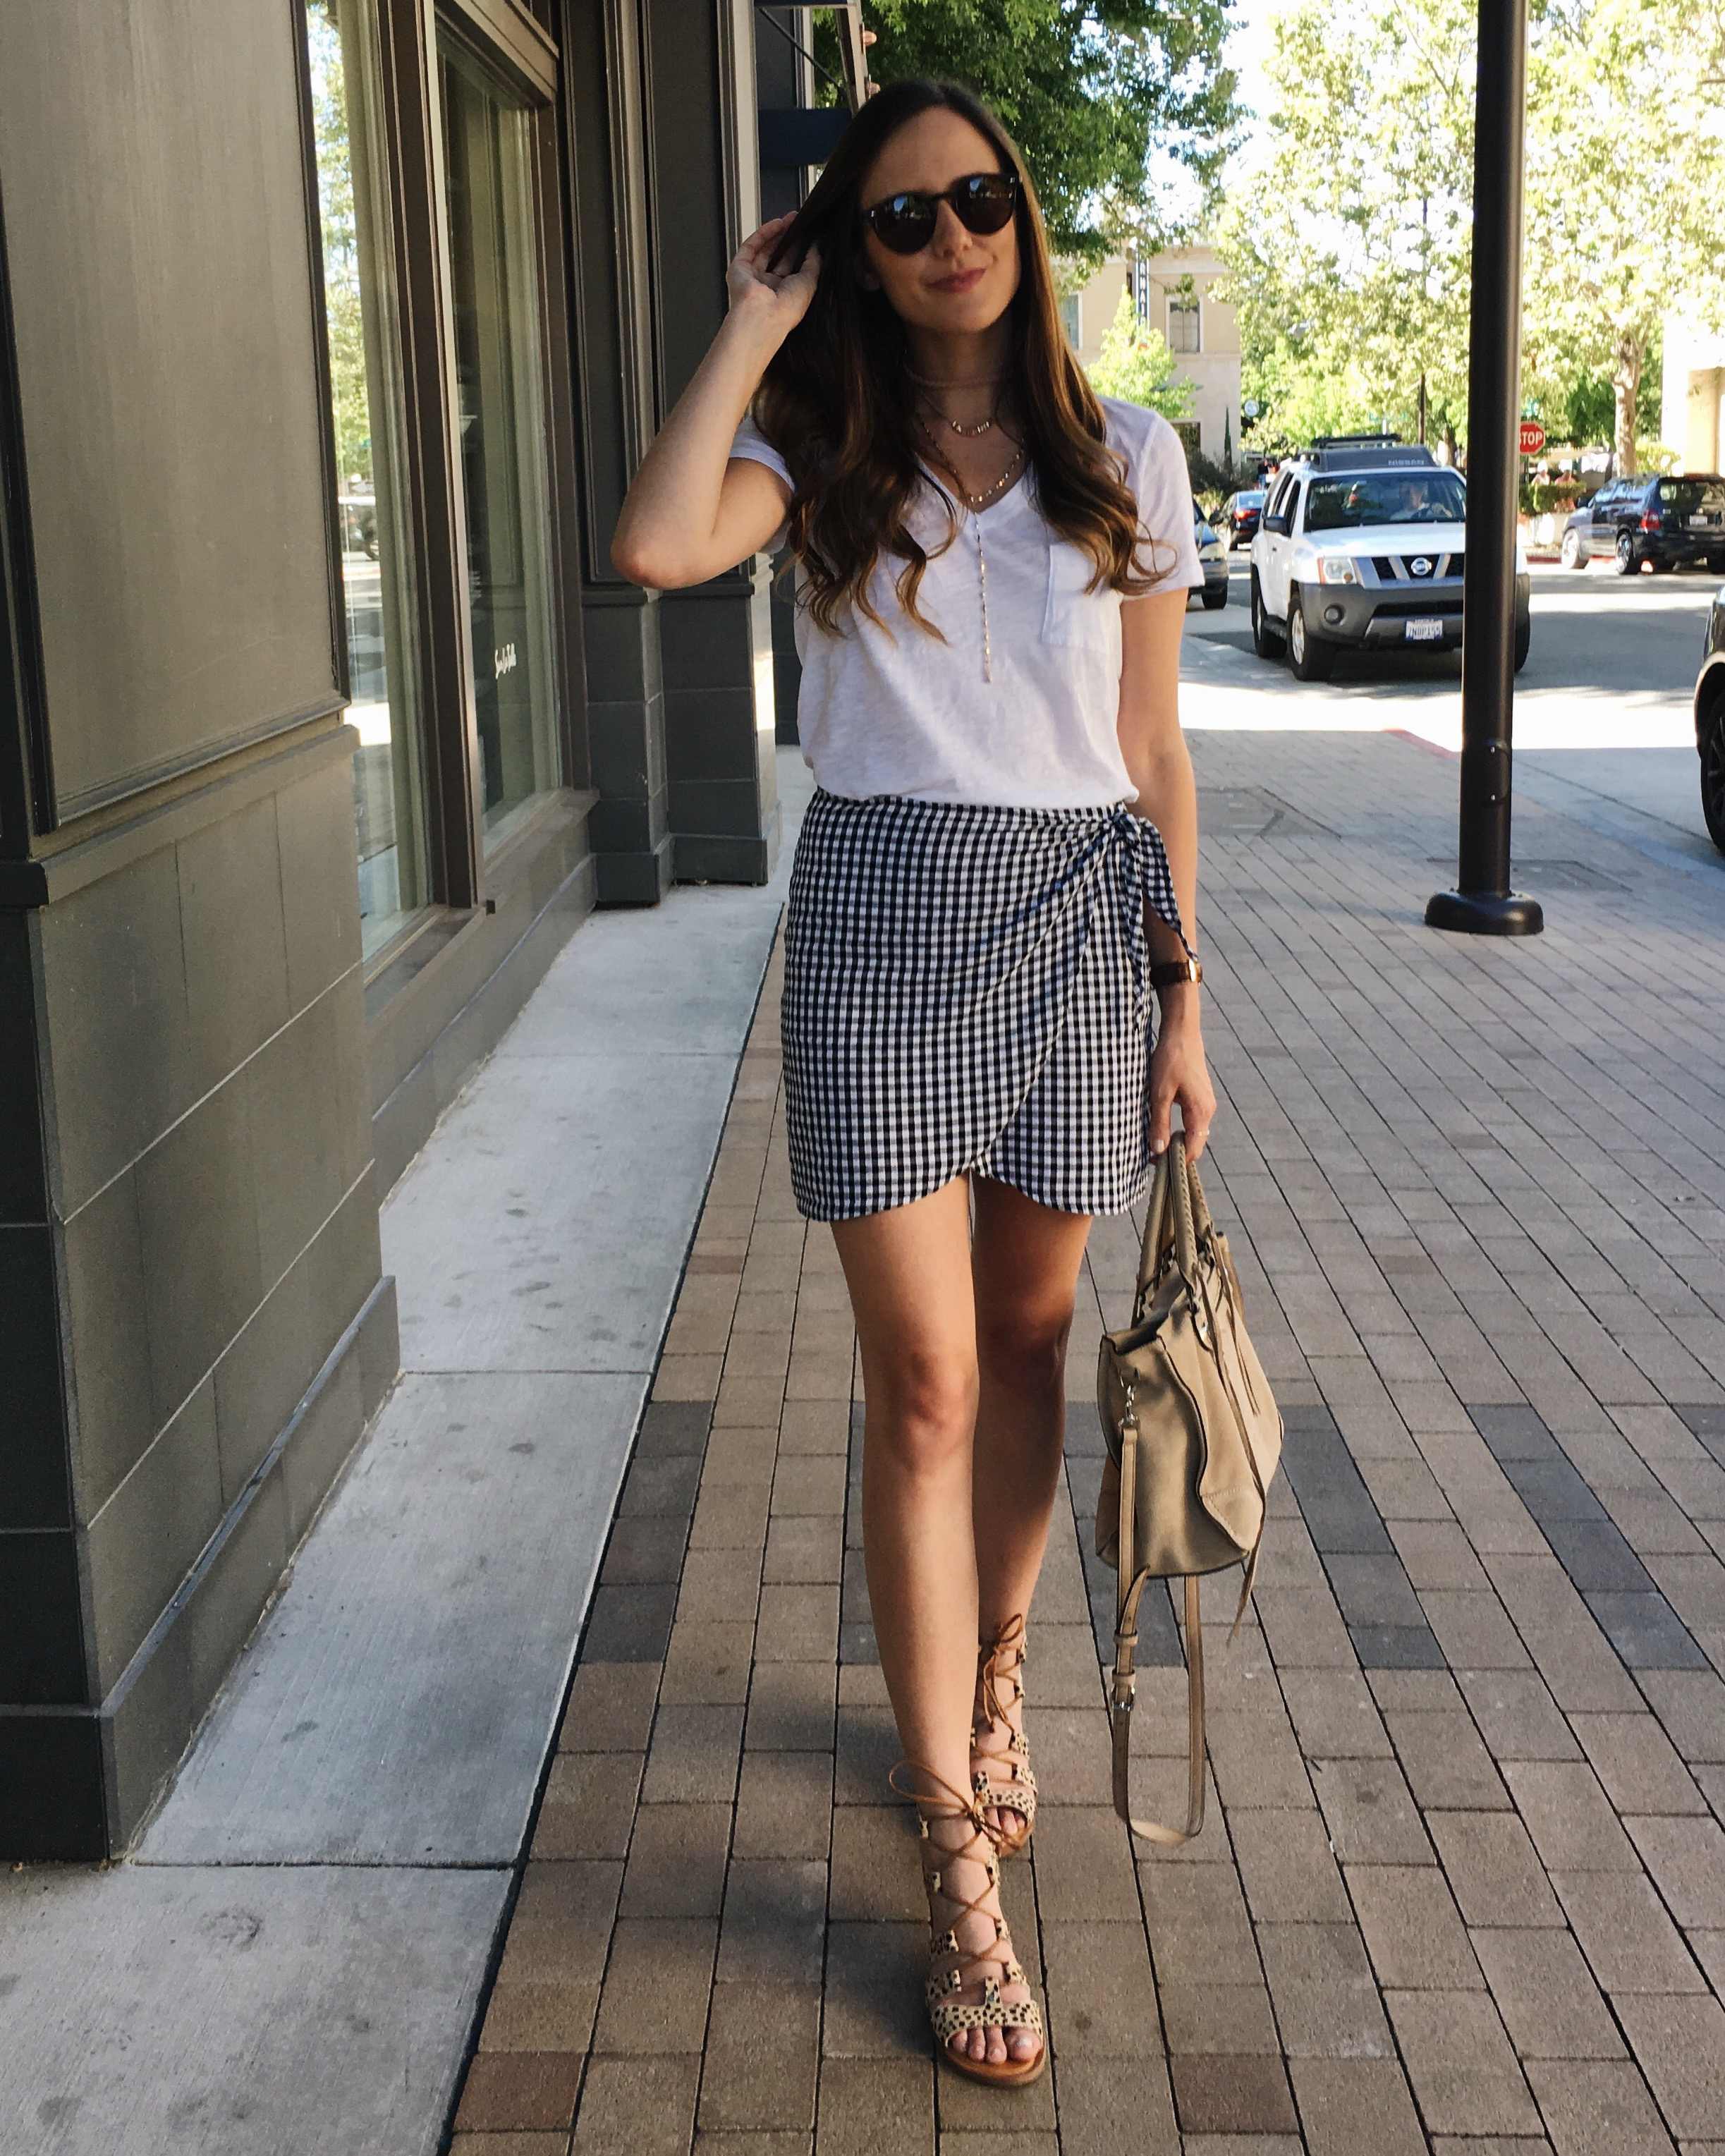 Gingham skirt outfit